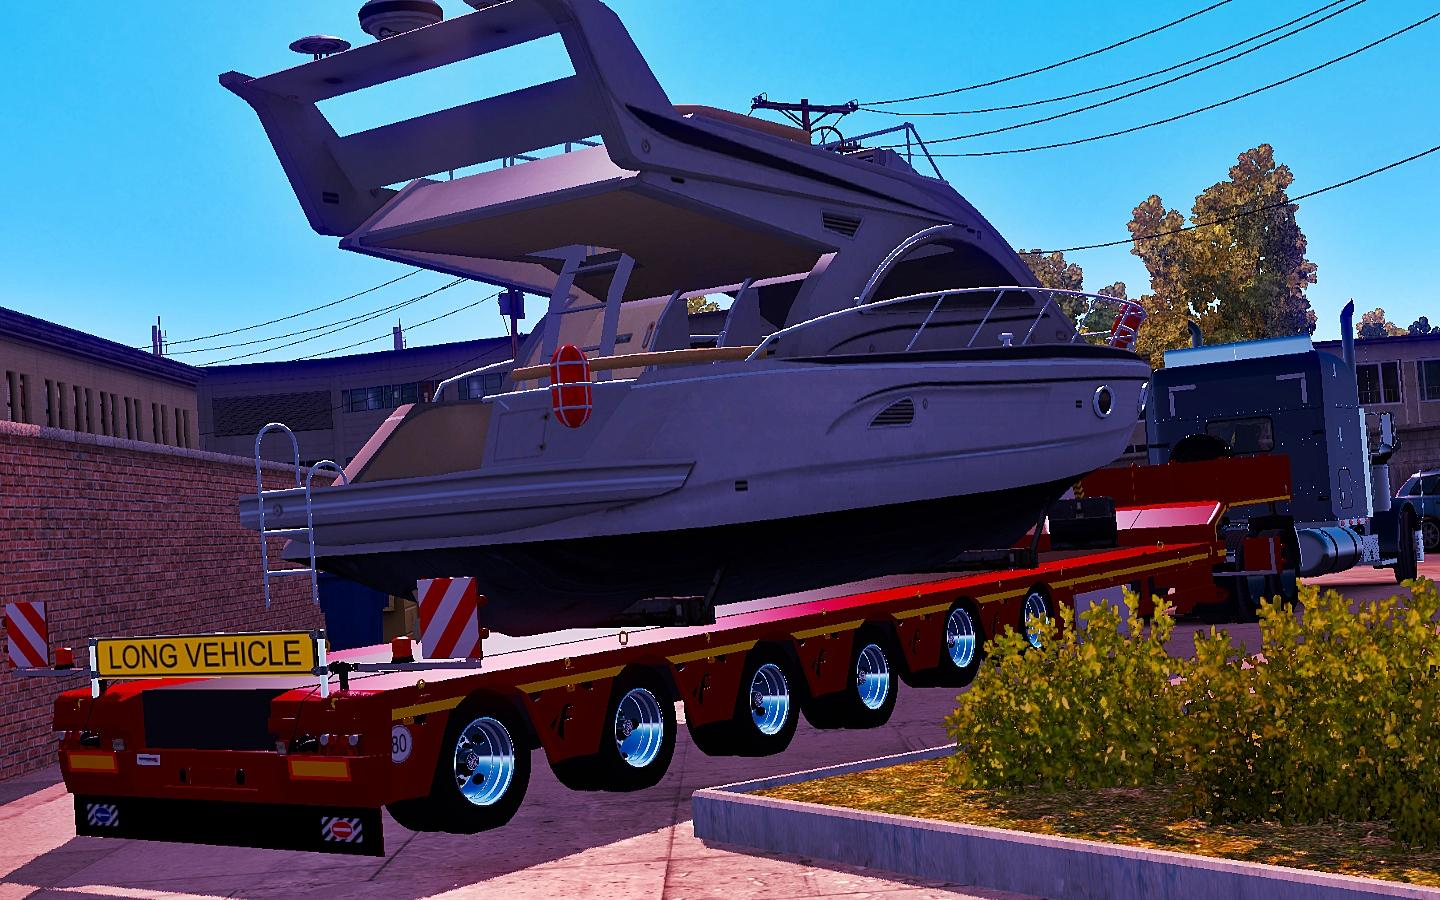 yacht-trailer-all-version_1